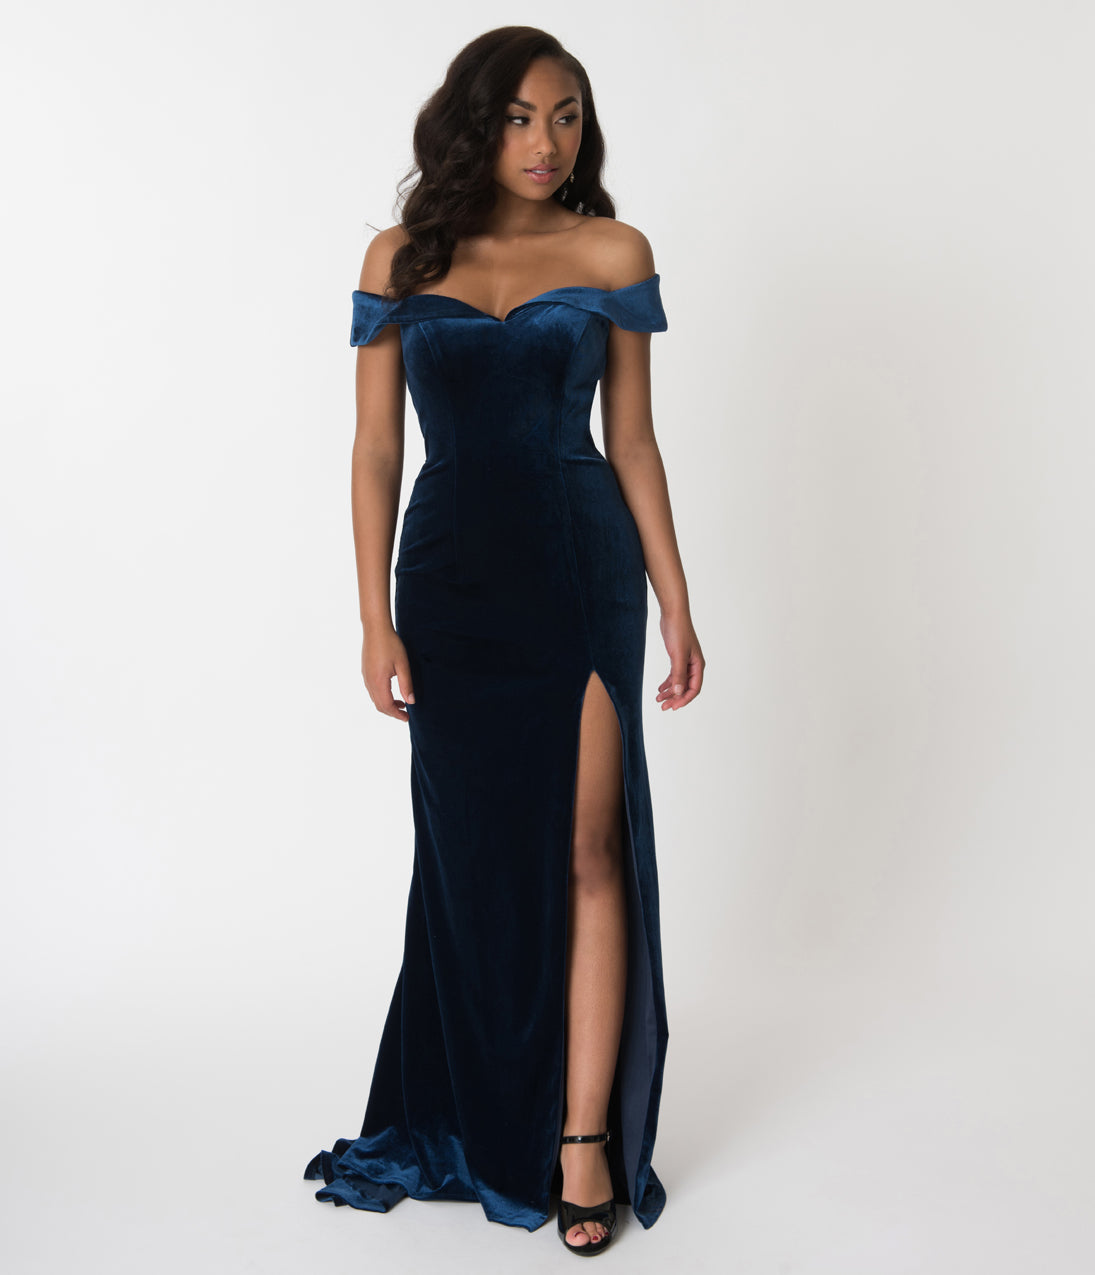 1930s Evening Dresses | Old Hollywood Dress Navy Blue Velvet Bateau Neckline Cap Sleeve Gown $180.00 AT vintagedancer.com